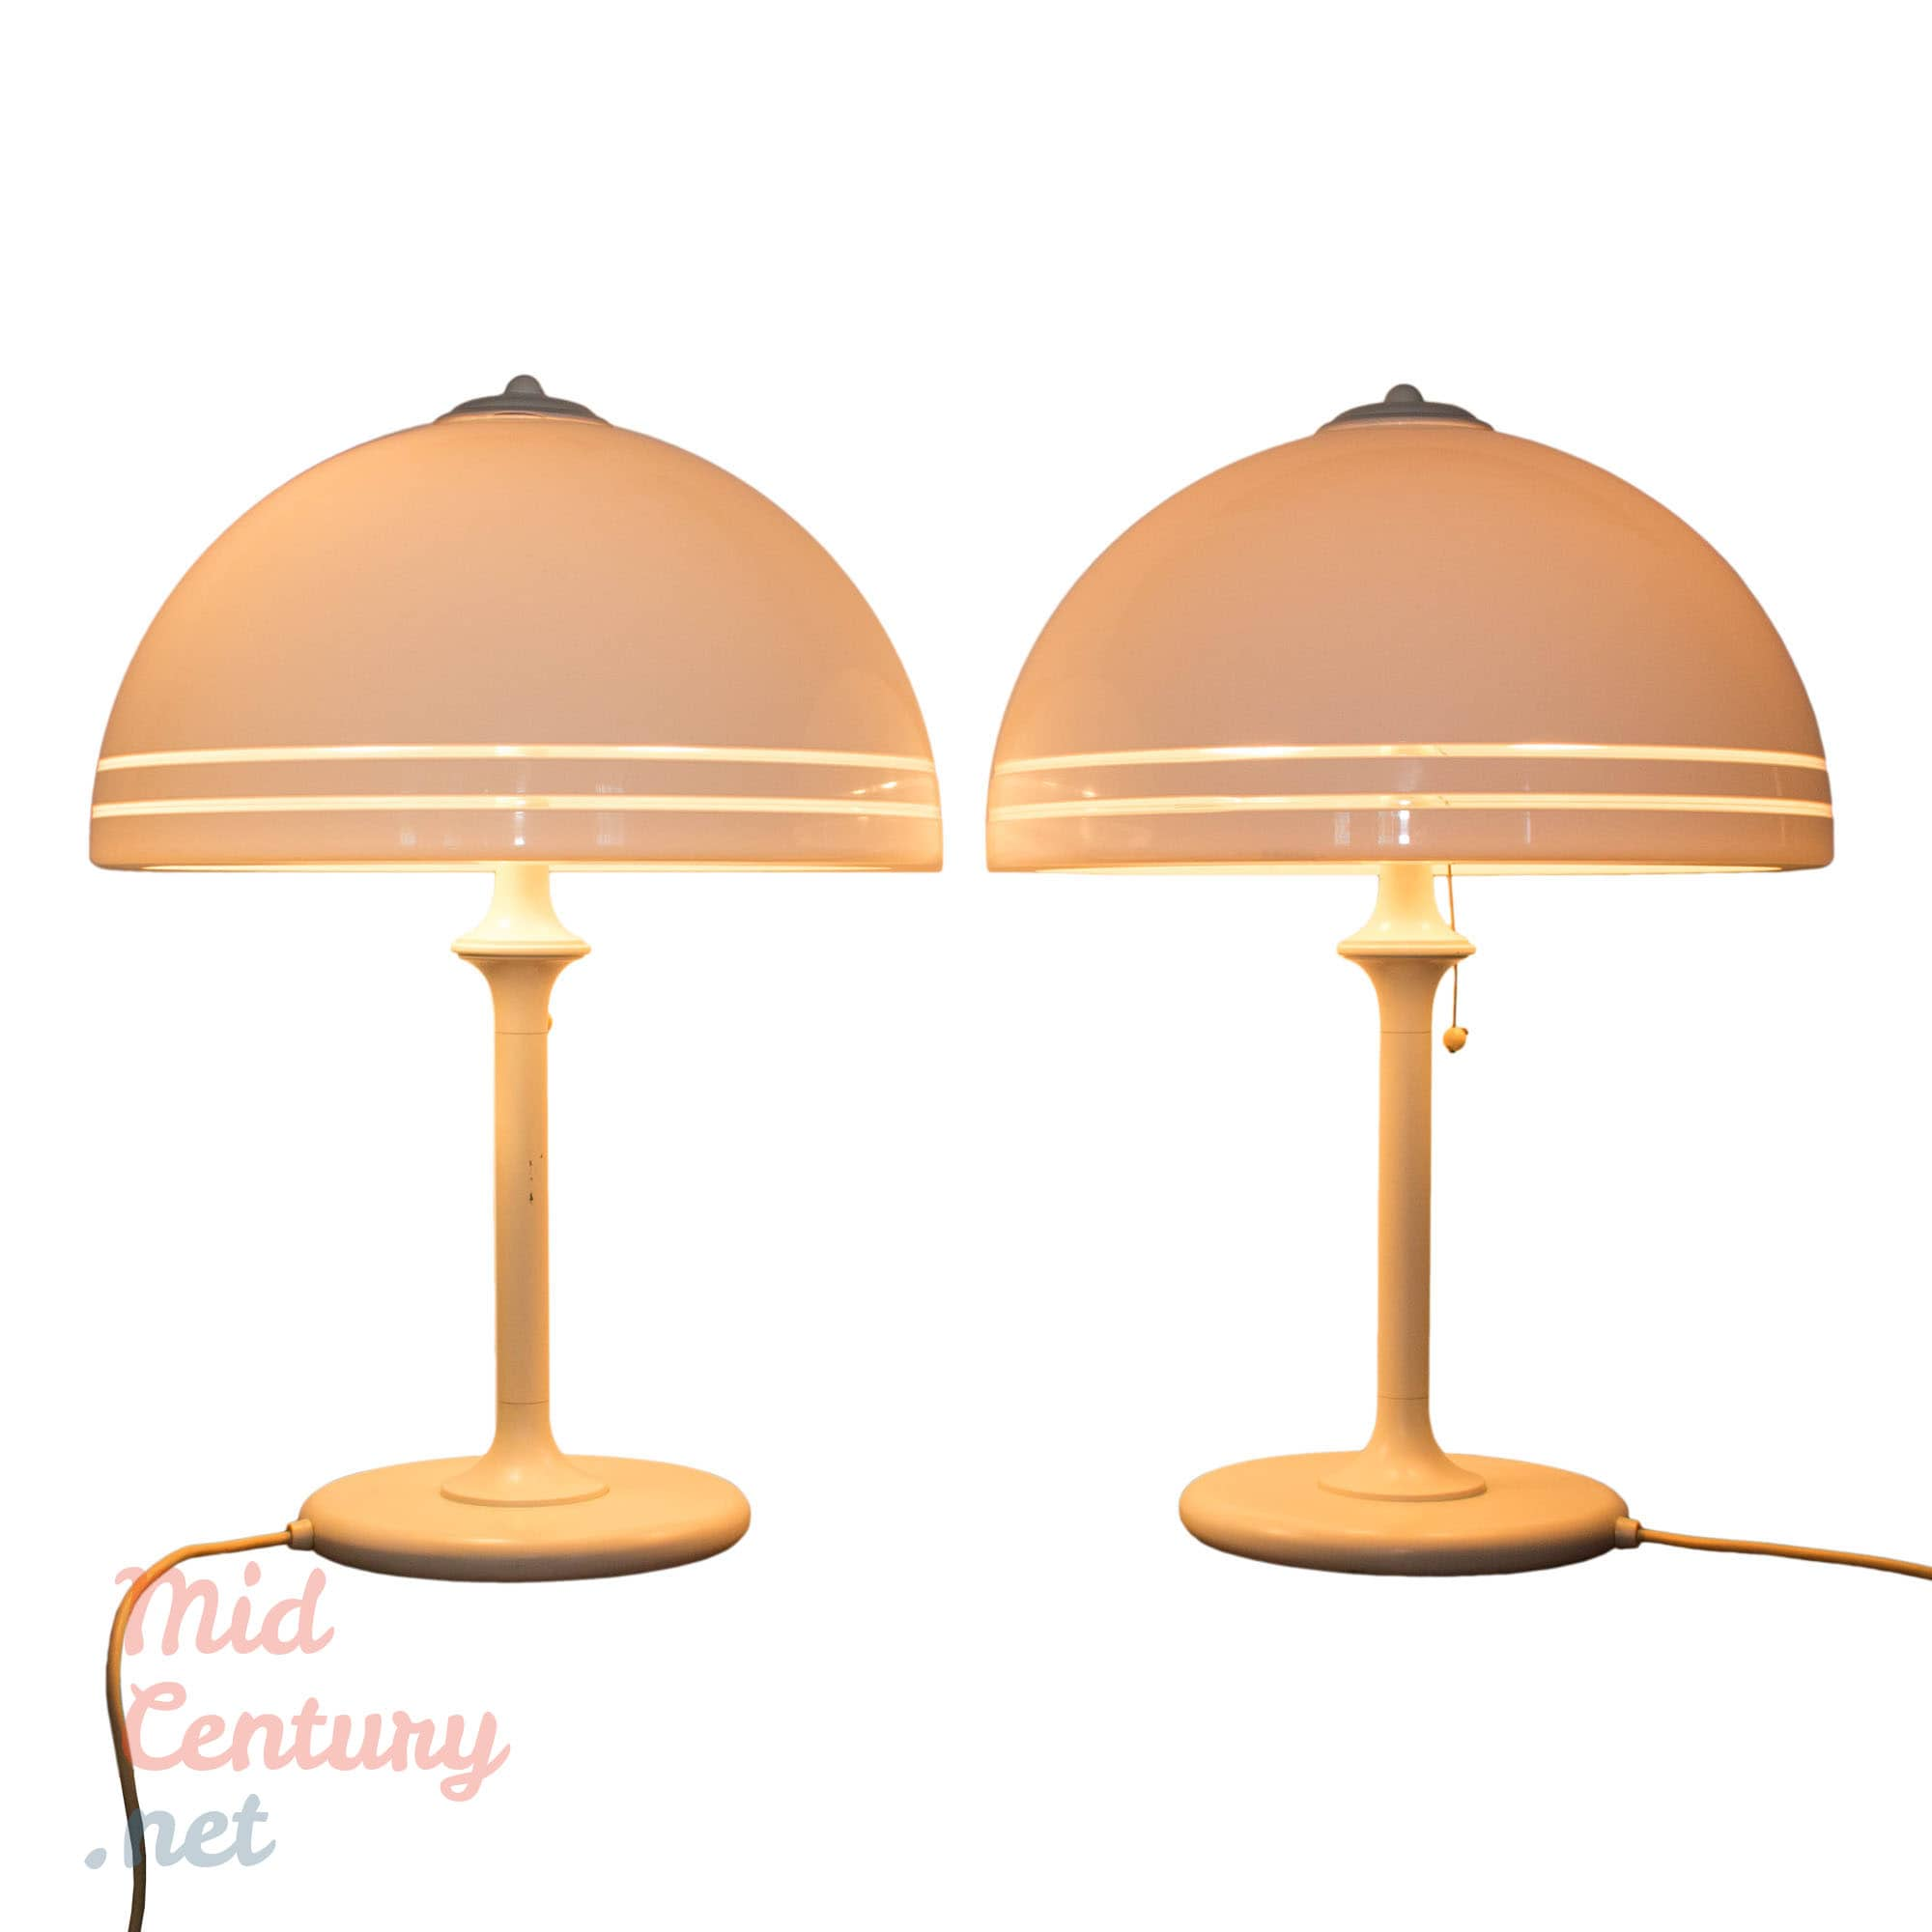 Spectacular pair of bedside table lamps by Wessel-Herford